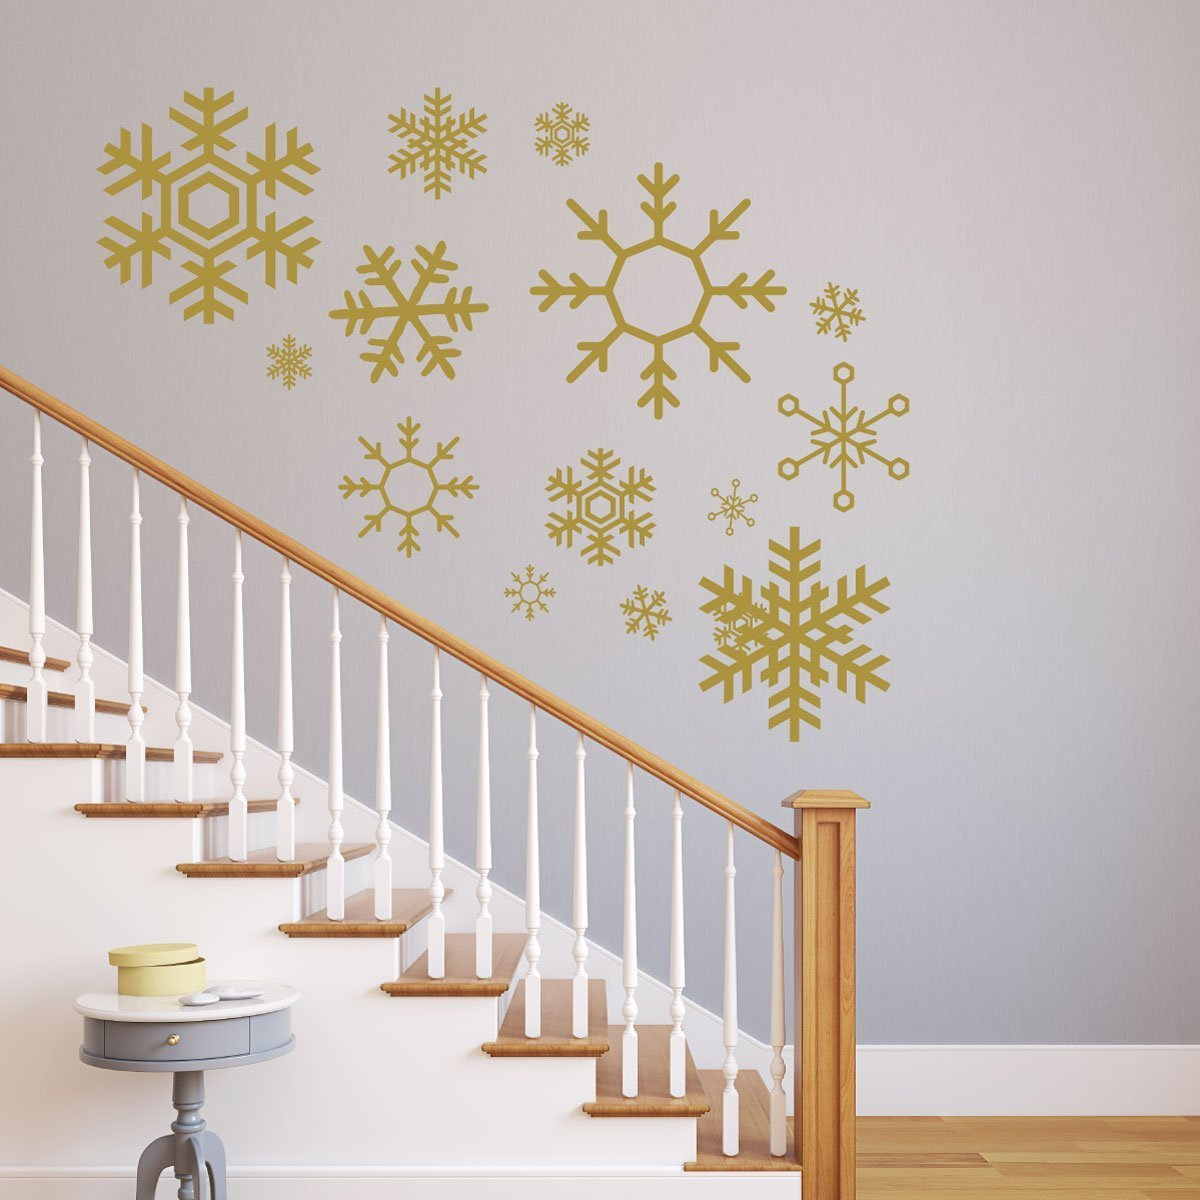 Snowflake Wall Decals   Christmas, Winter Vinyl Home Decor   Available In  White, ...